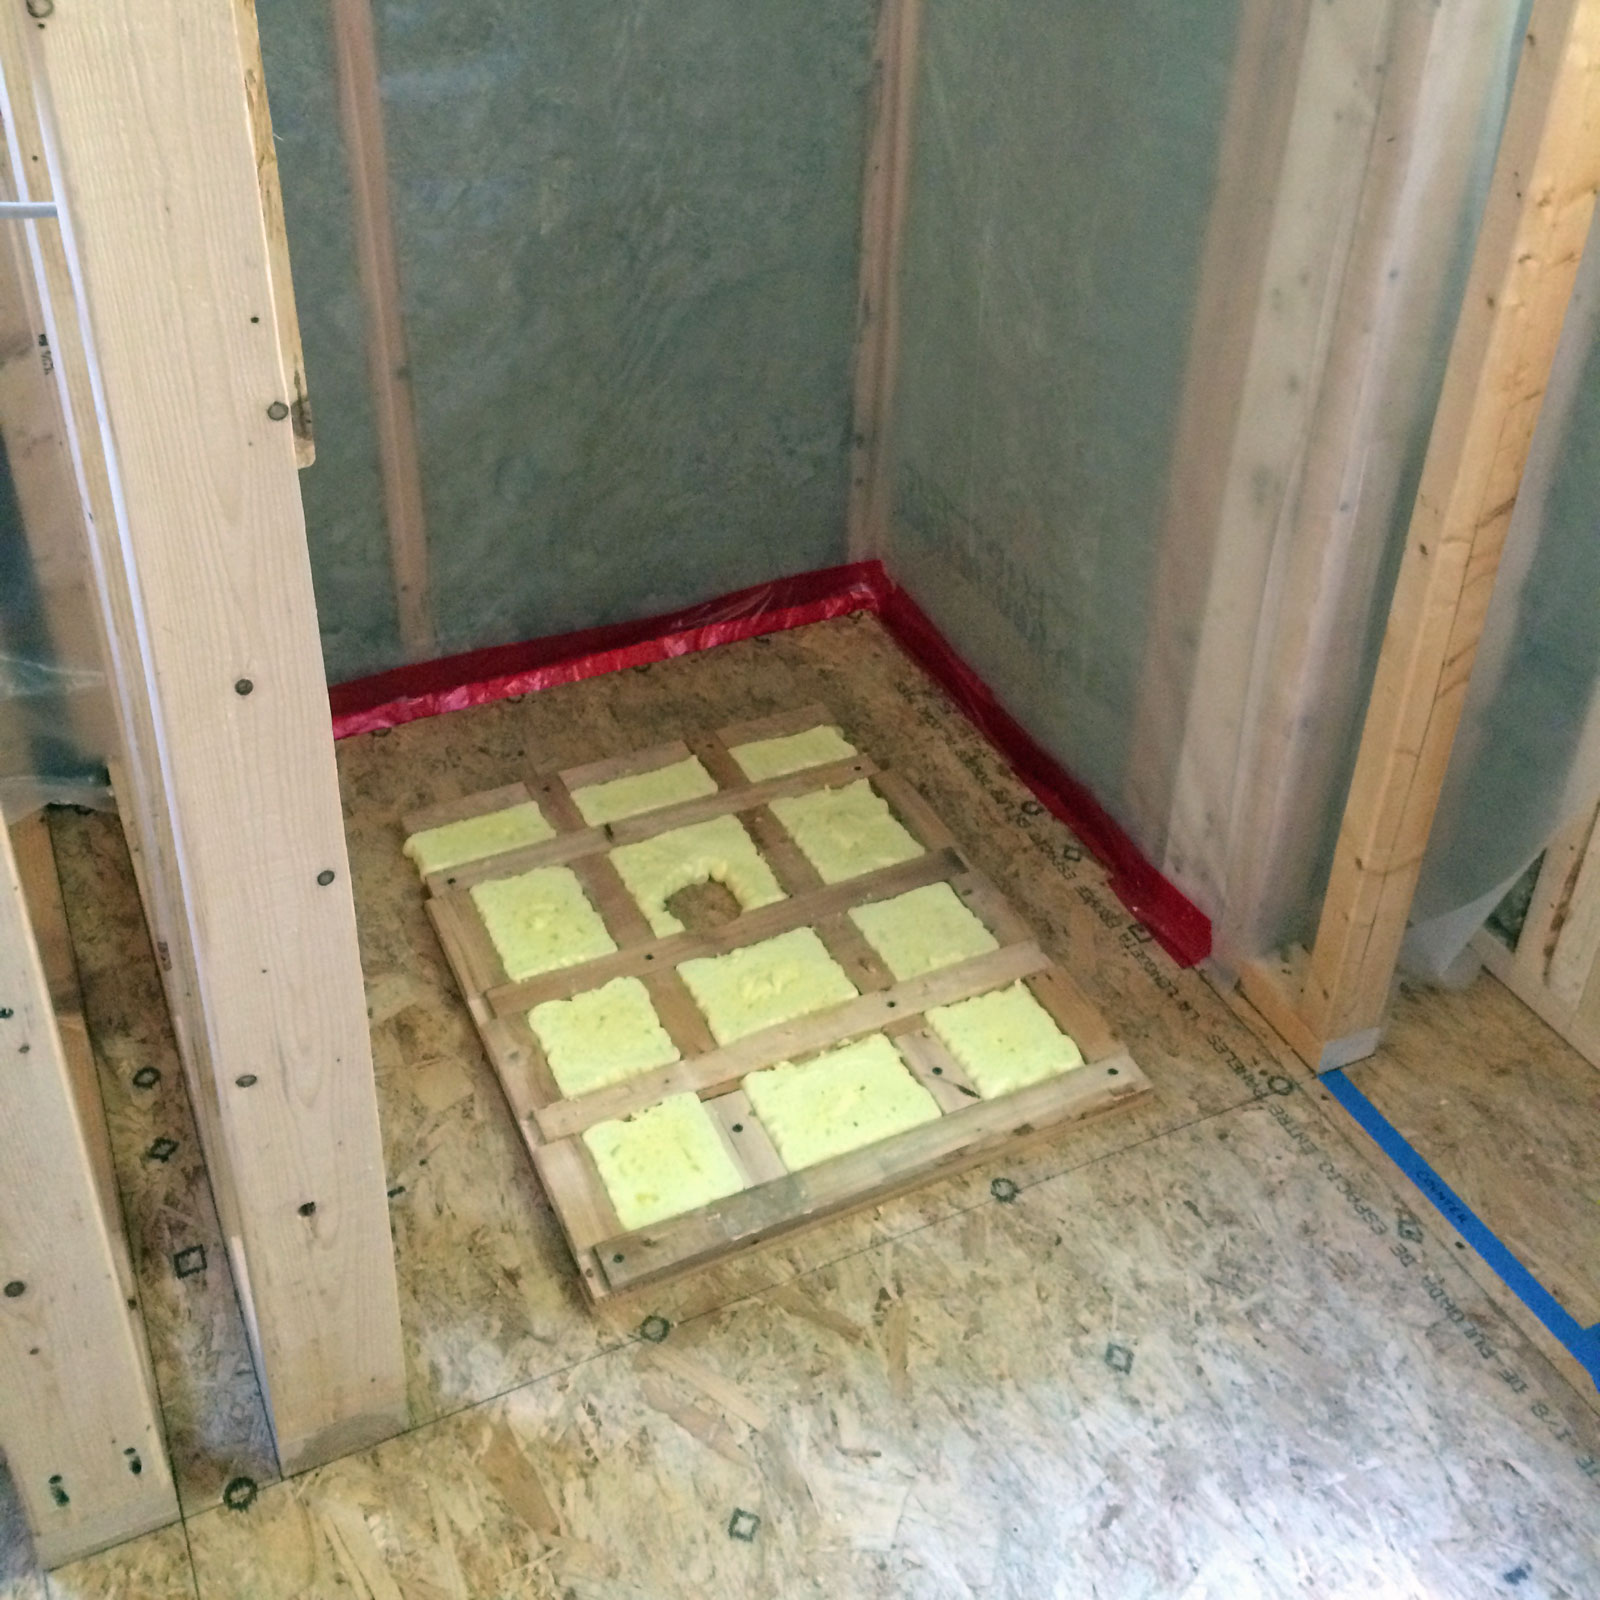 RiverEdge: Insulation & Vapor Barrier--Walls & Ceiling--2